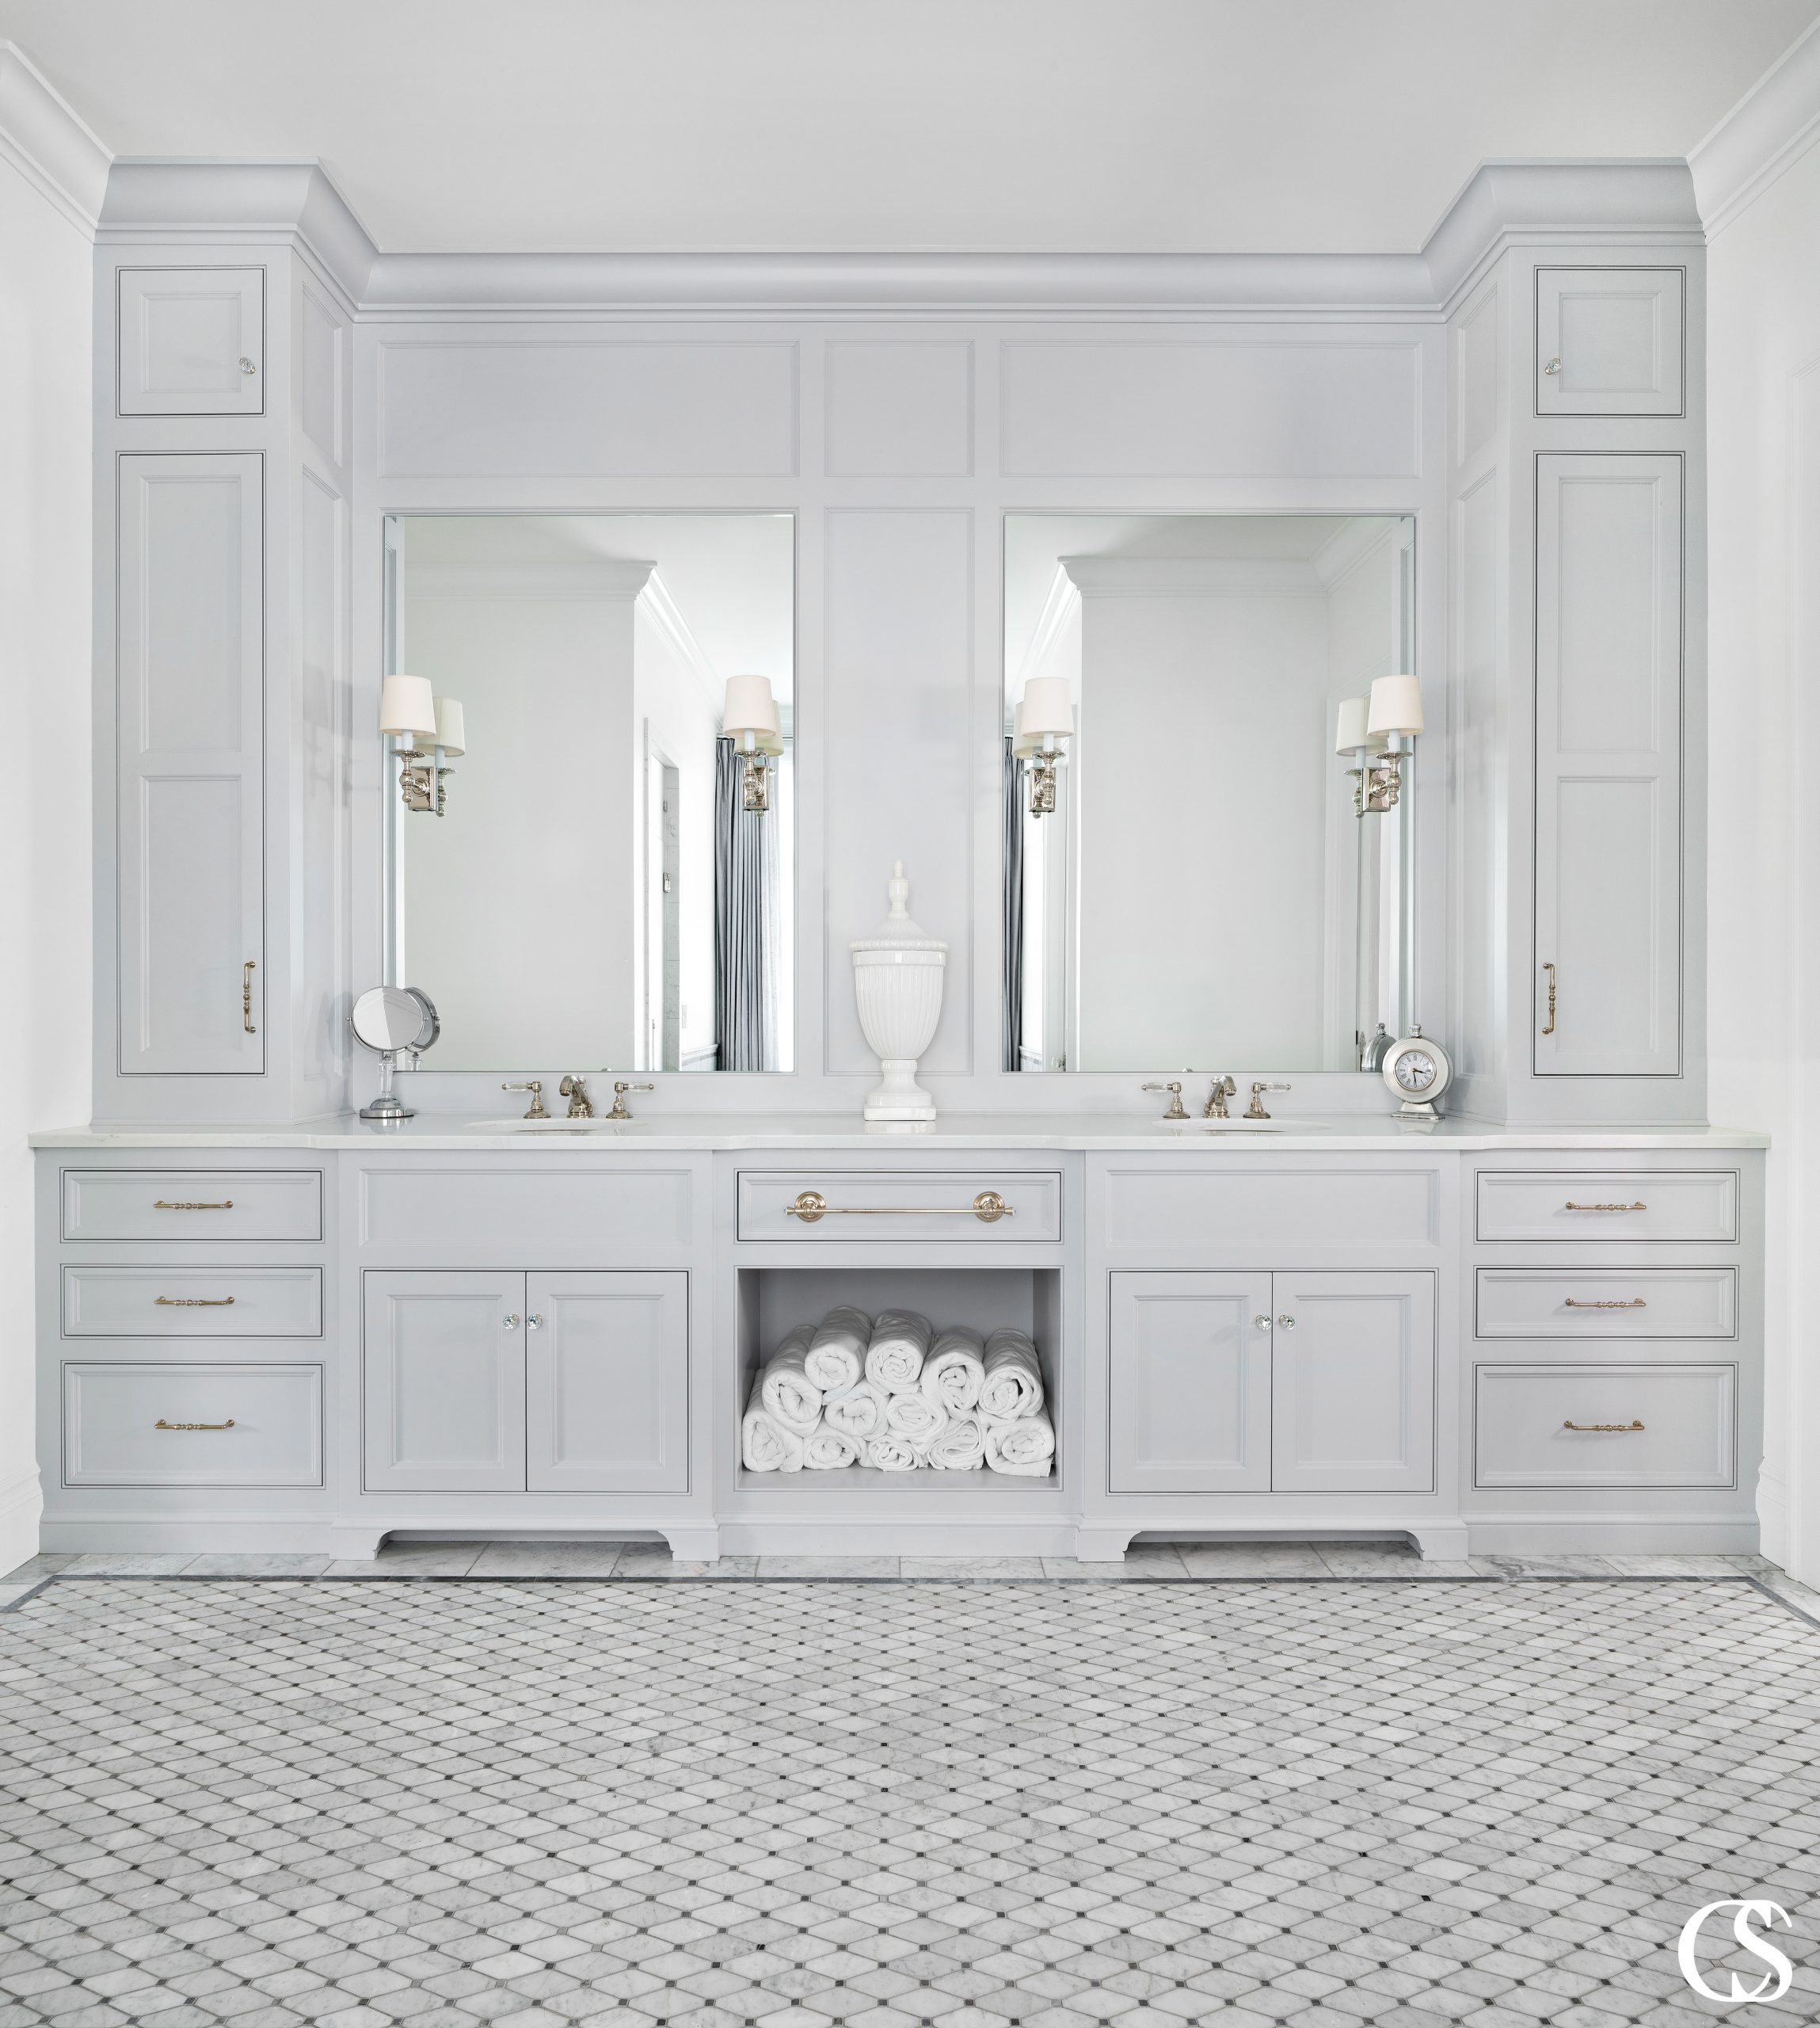 When a bathroom is meant to serve many, it's important to have two sinks and easily accessible towels like in this custom two sink bathroom design.